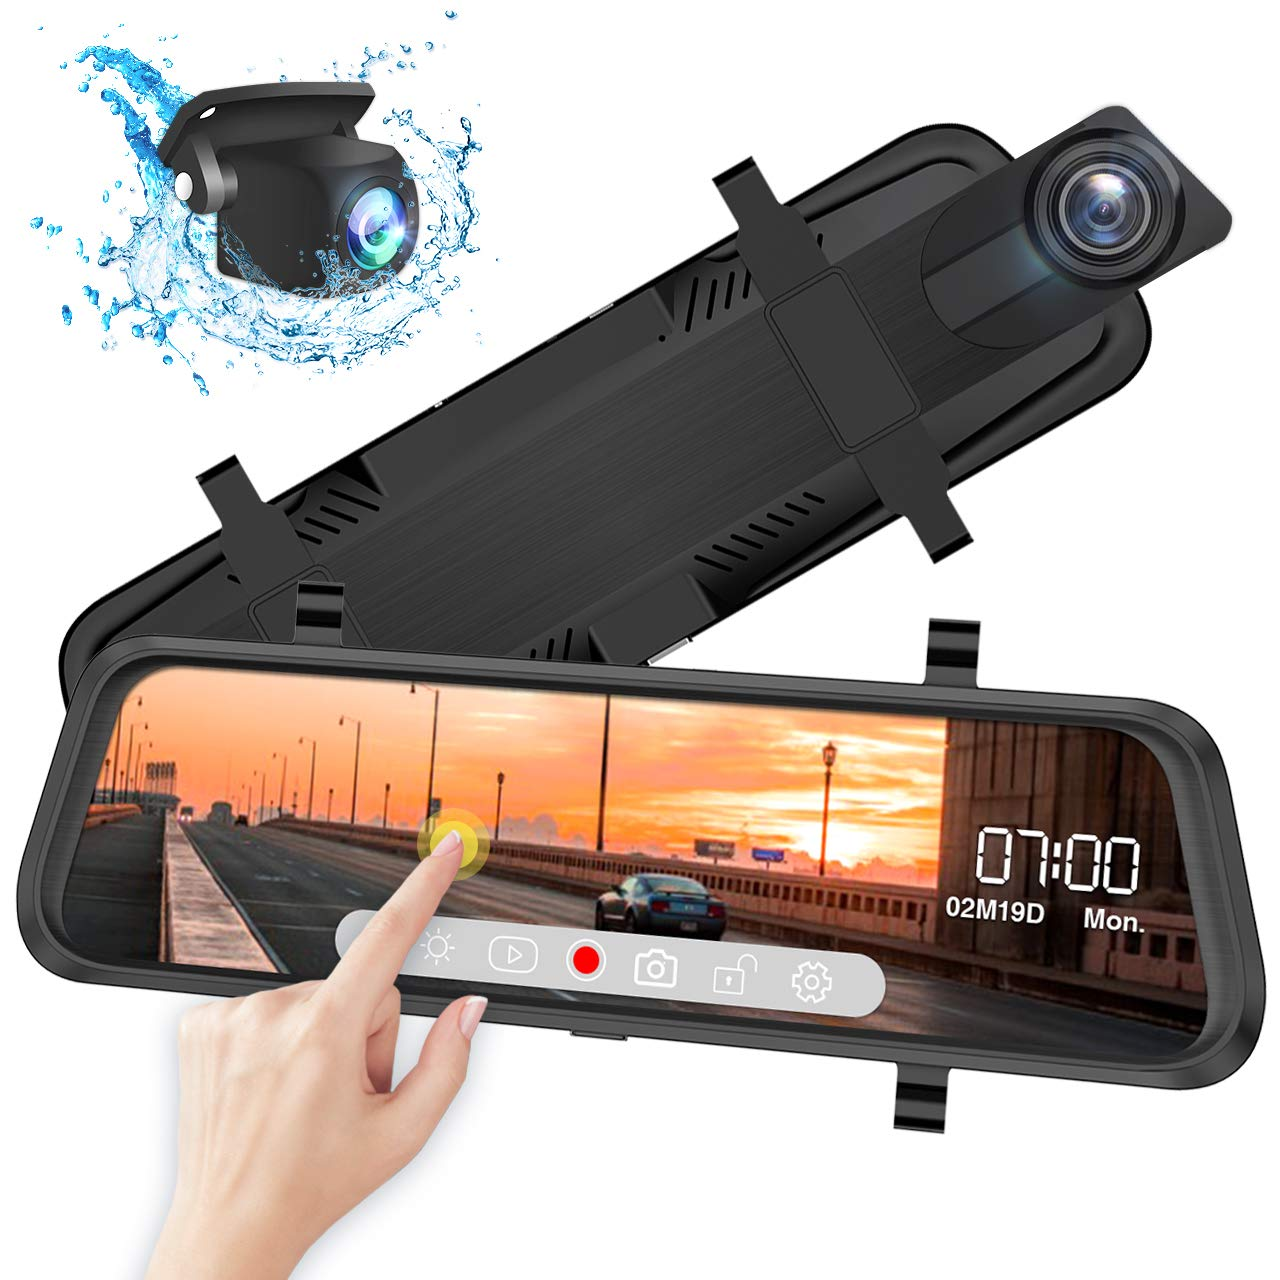 Streaming Media Front and Rear View Mirror Dash Cam,1080P 170° Wide Angle Front Camera and 720P 140°Wide Angle Rear Camera, 10inch IPS Touch Screen, Backup Camera with Night Vision, G-Sensor